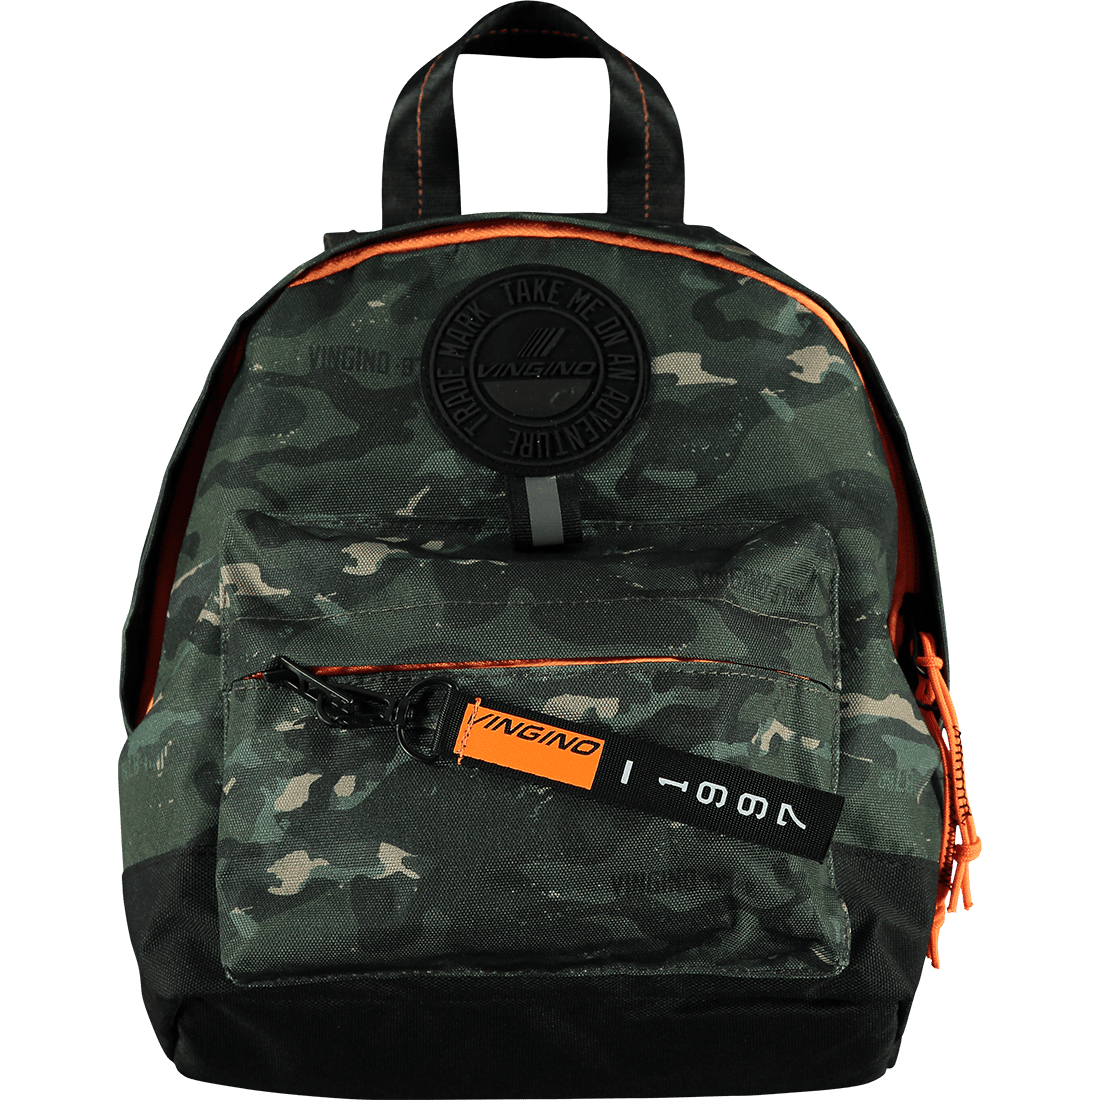 Vingino Backpack Vugo M Army Green